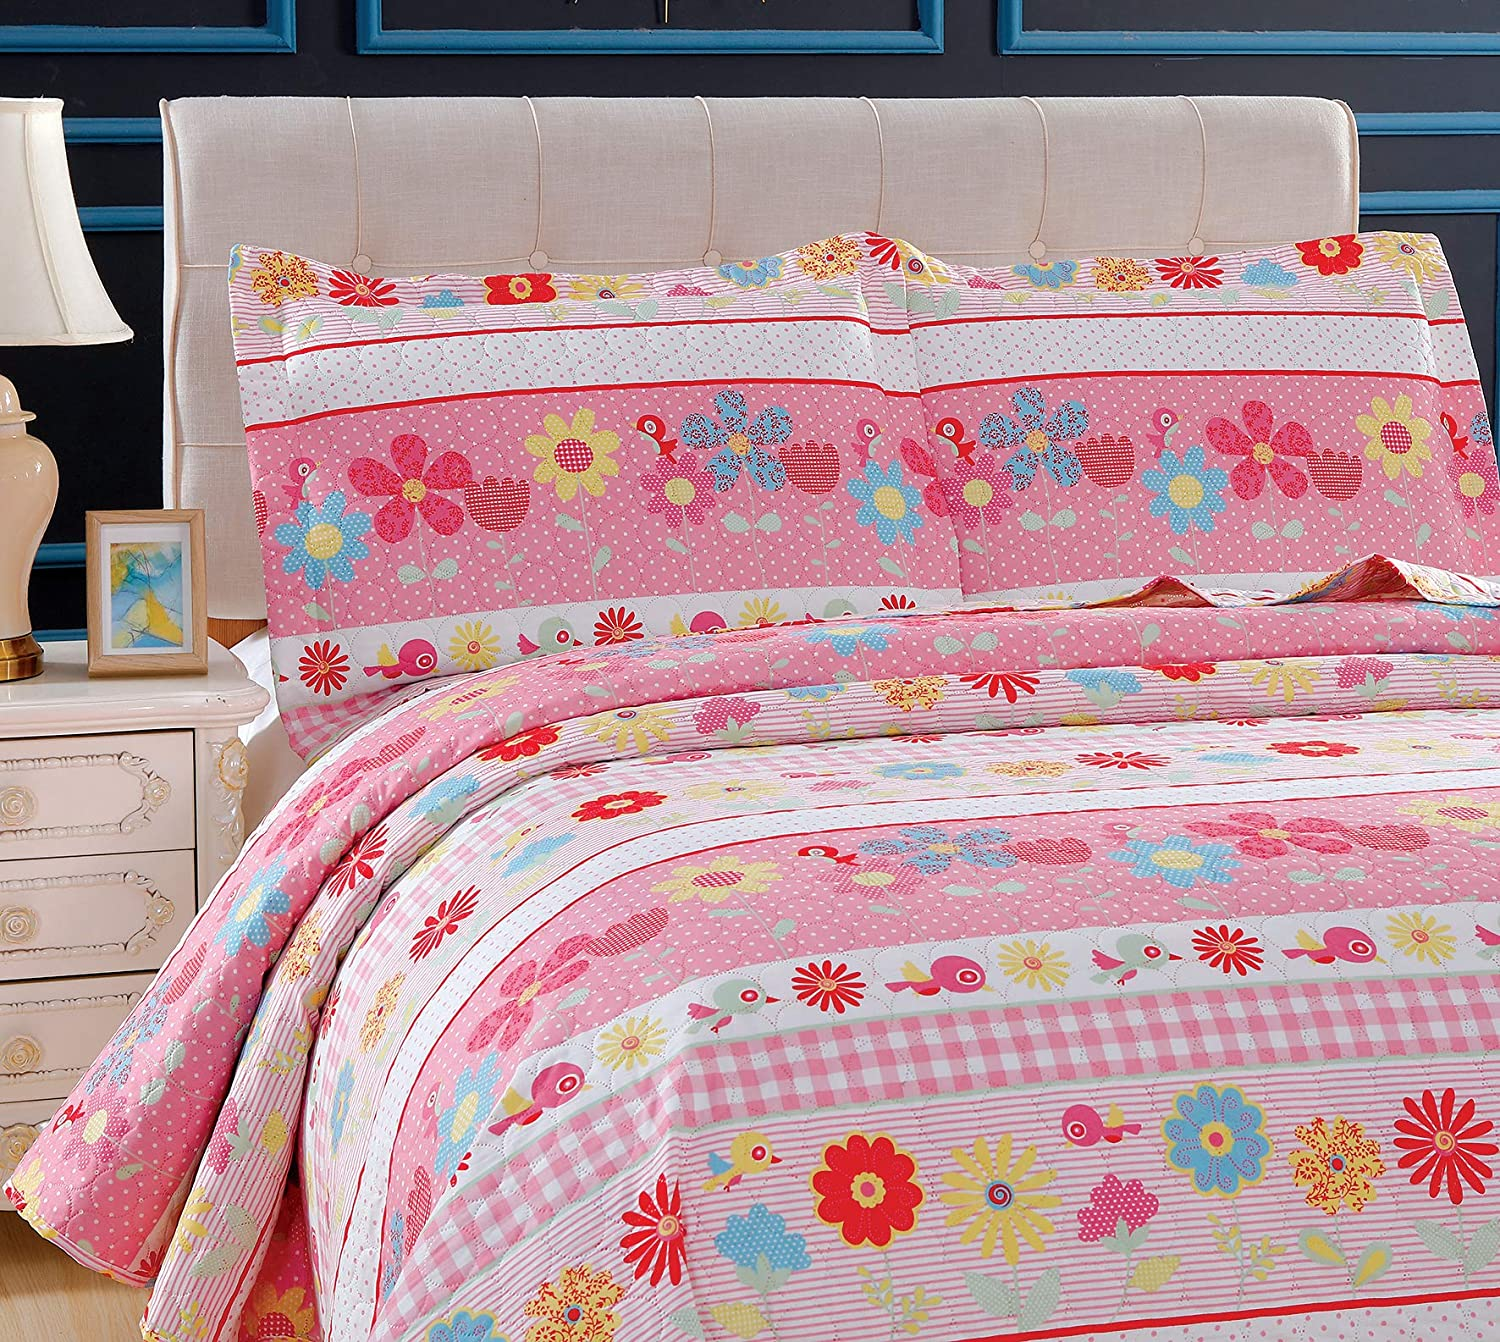 3-Piece Girls Floral Quilt Set Twin with Shams Soft Lightweight Breathable Quilted Bedspread Coverlet Bedding Set for All Seasons Pink Flower, Twin Flowers Birds Dot Stripe